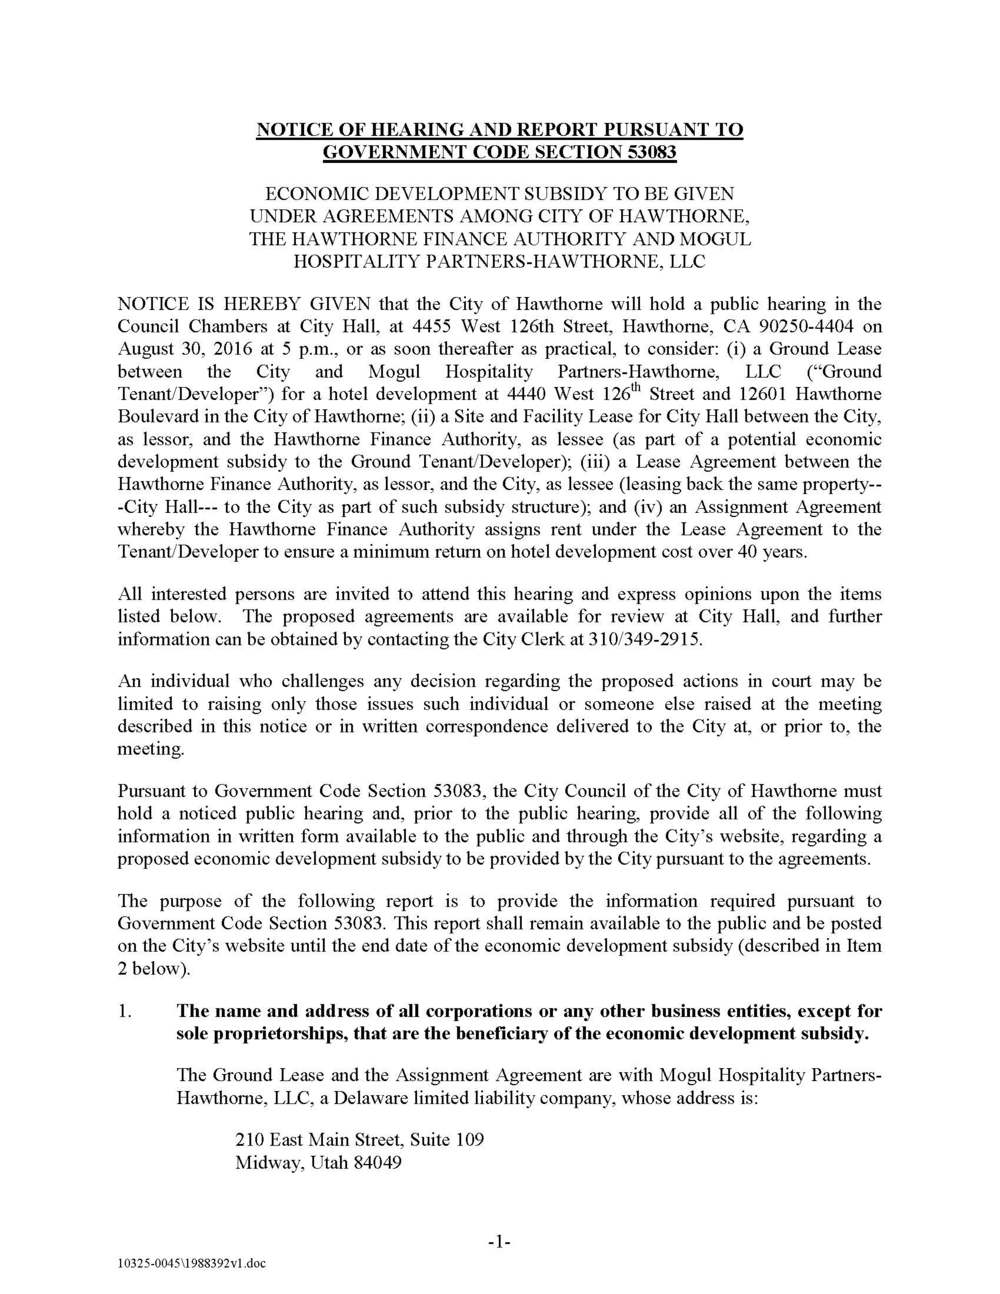 cm_events-Notice of Hearing Gov Code 53083revise3_Page_1.jpg